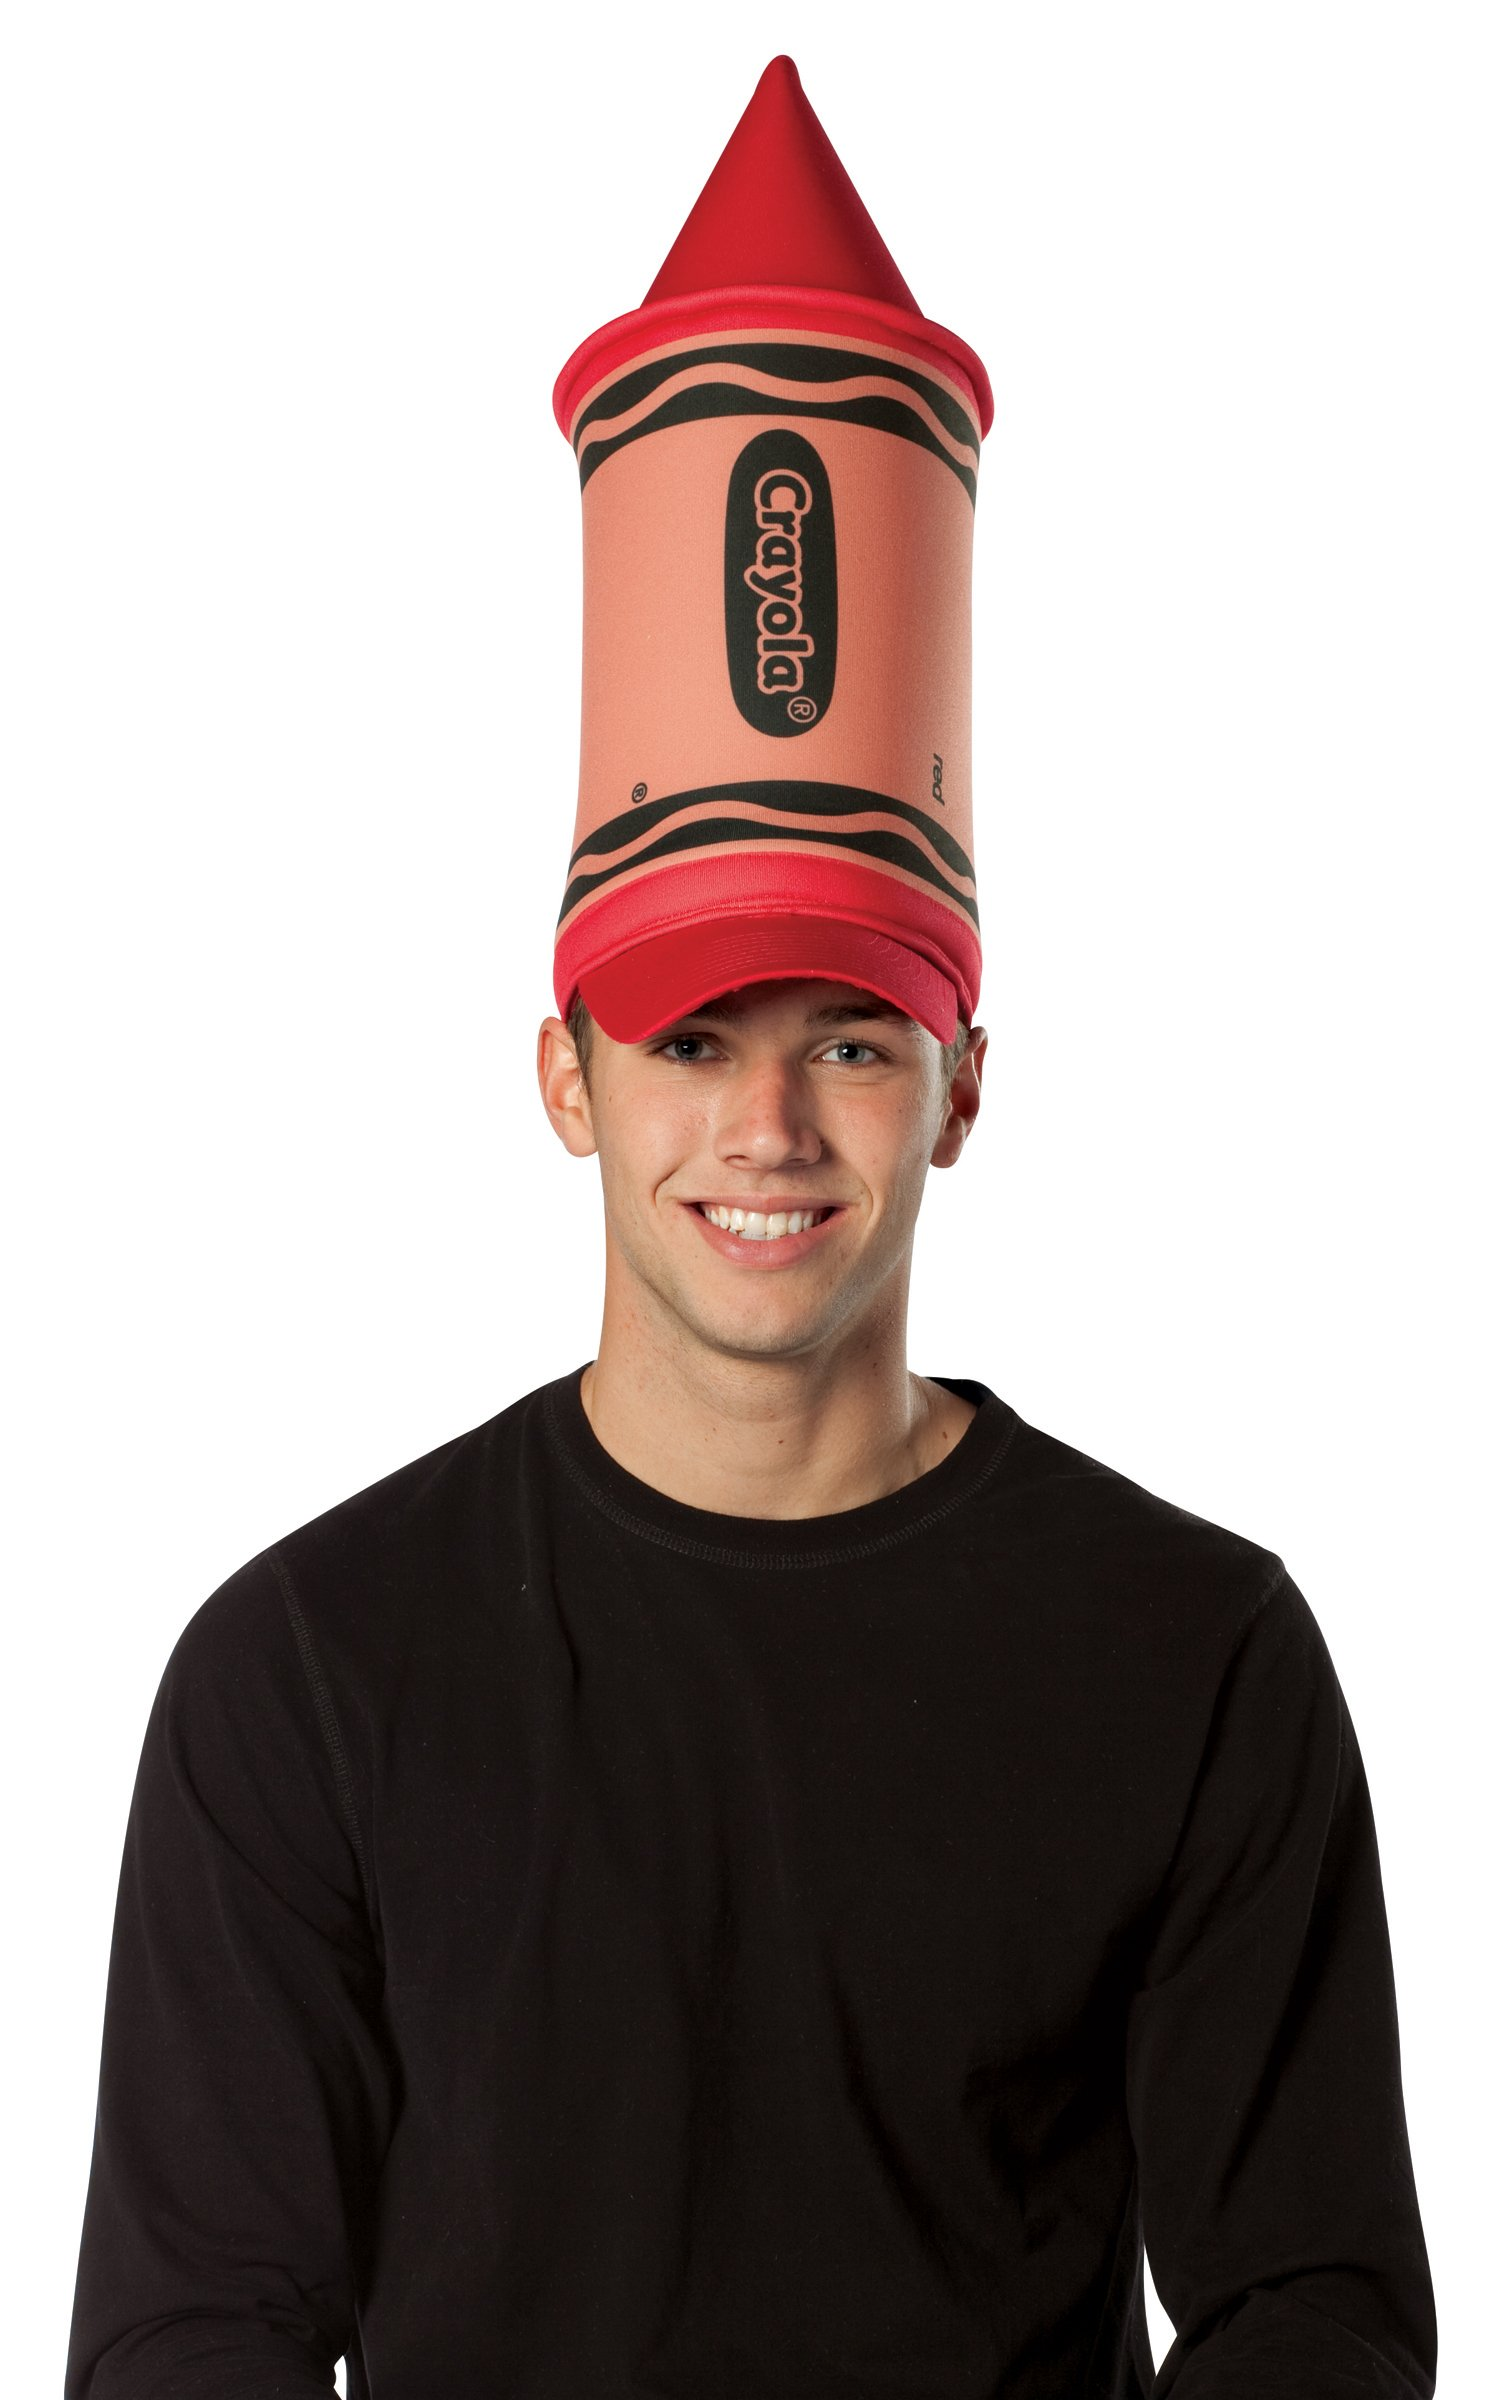 Crayola Red Crayon Hat (Adult)